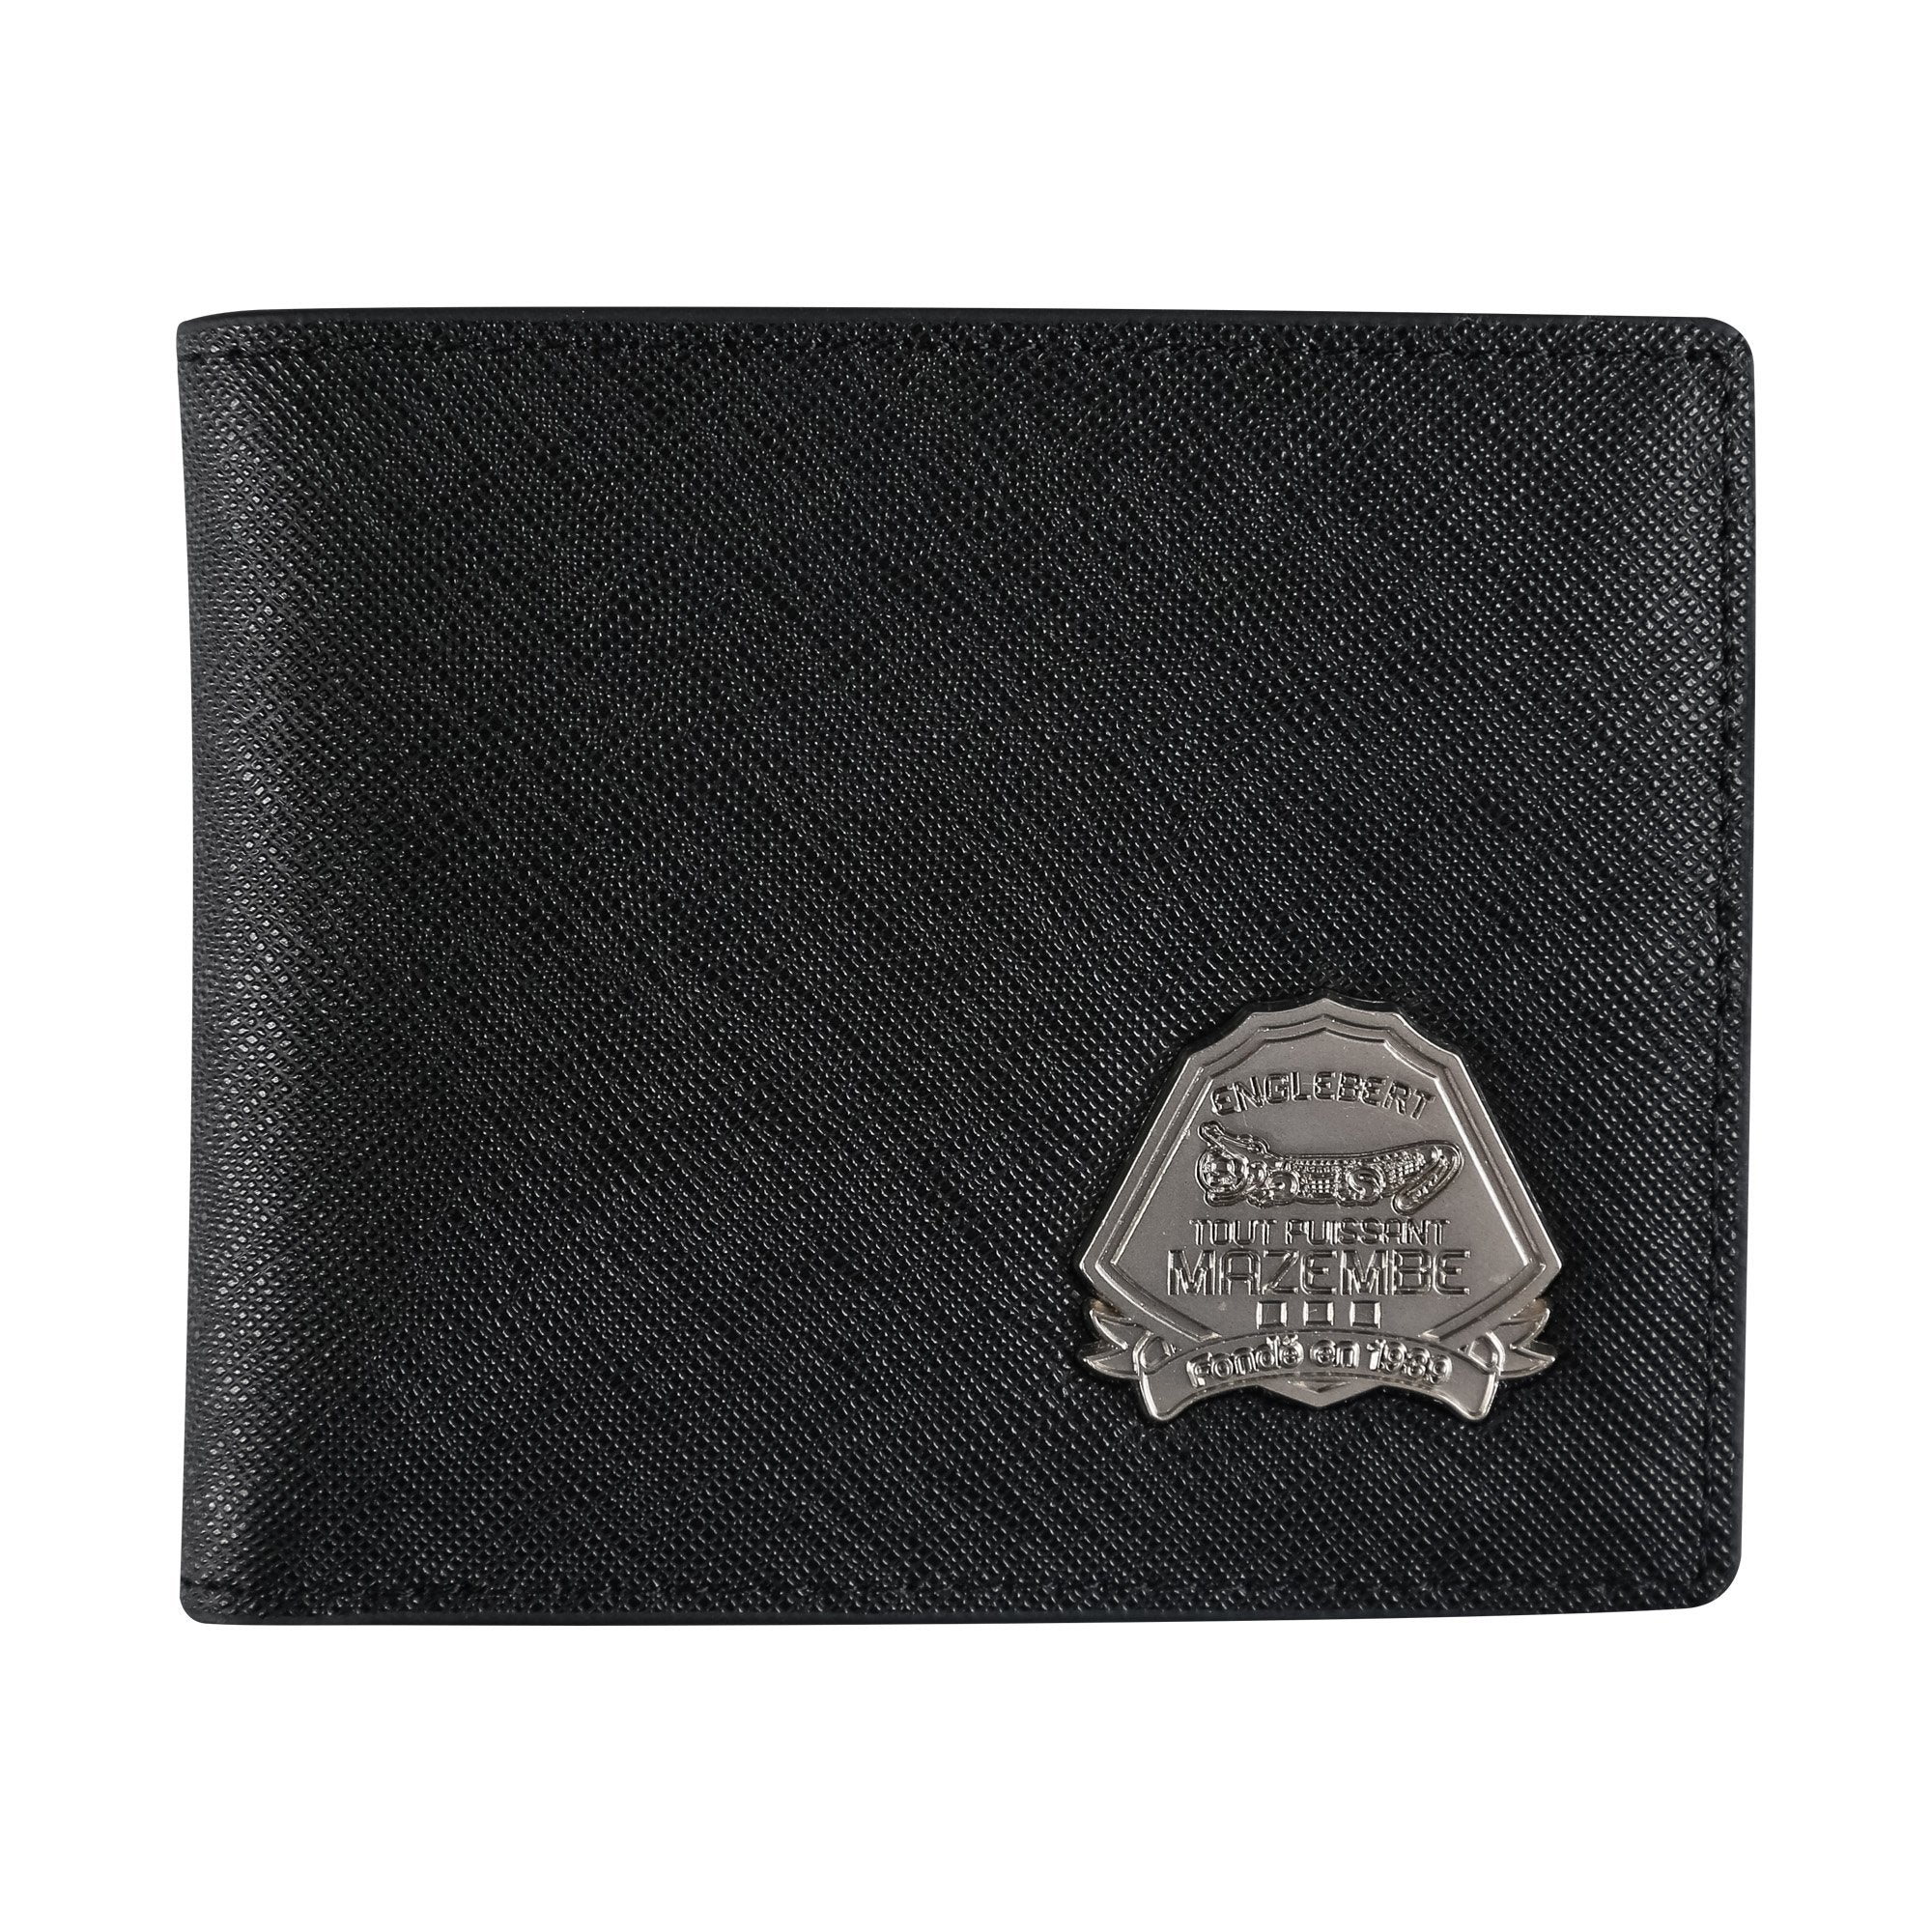 TPM Saffiano Leather Wallet With TPM Logo